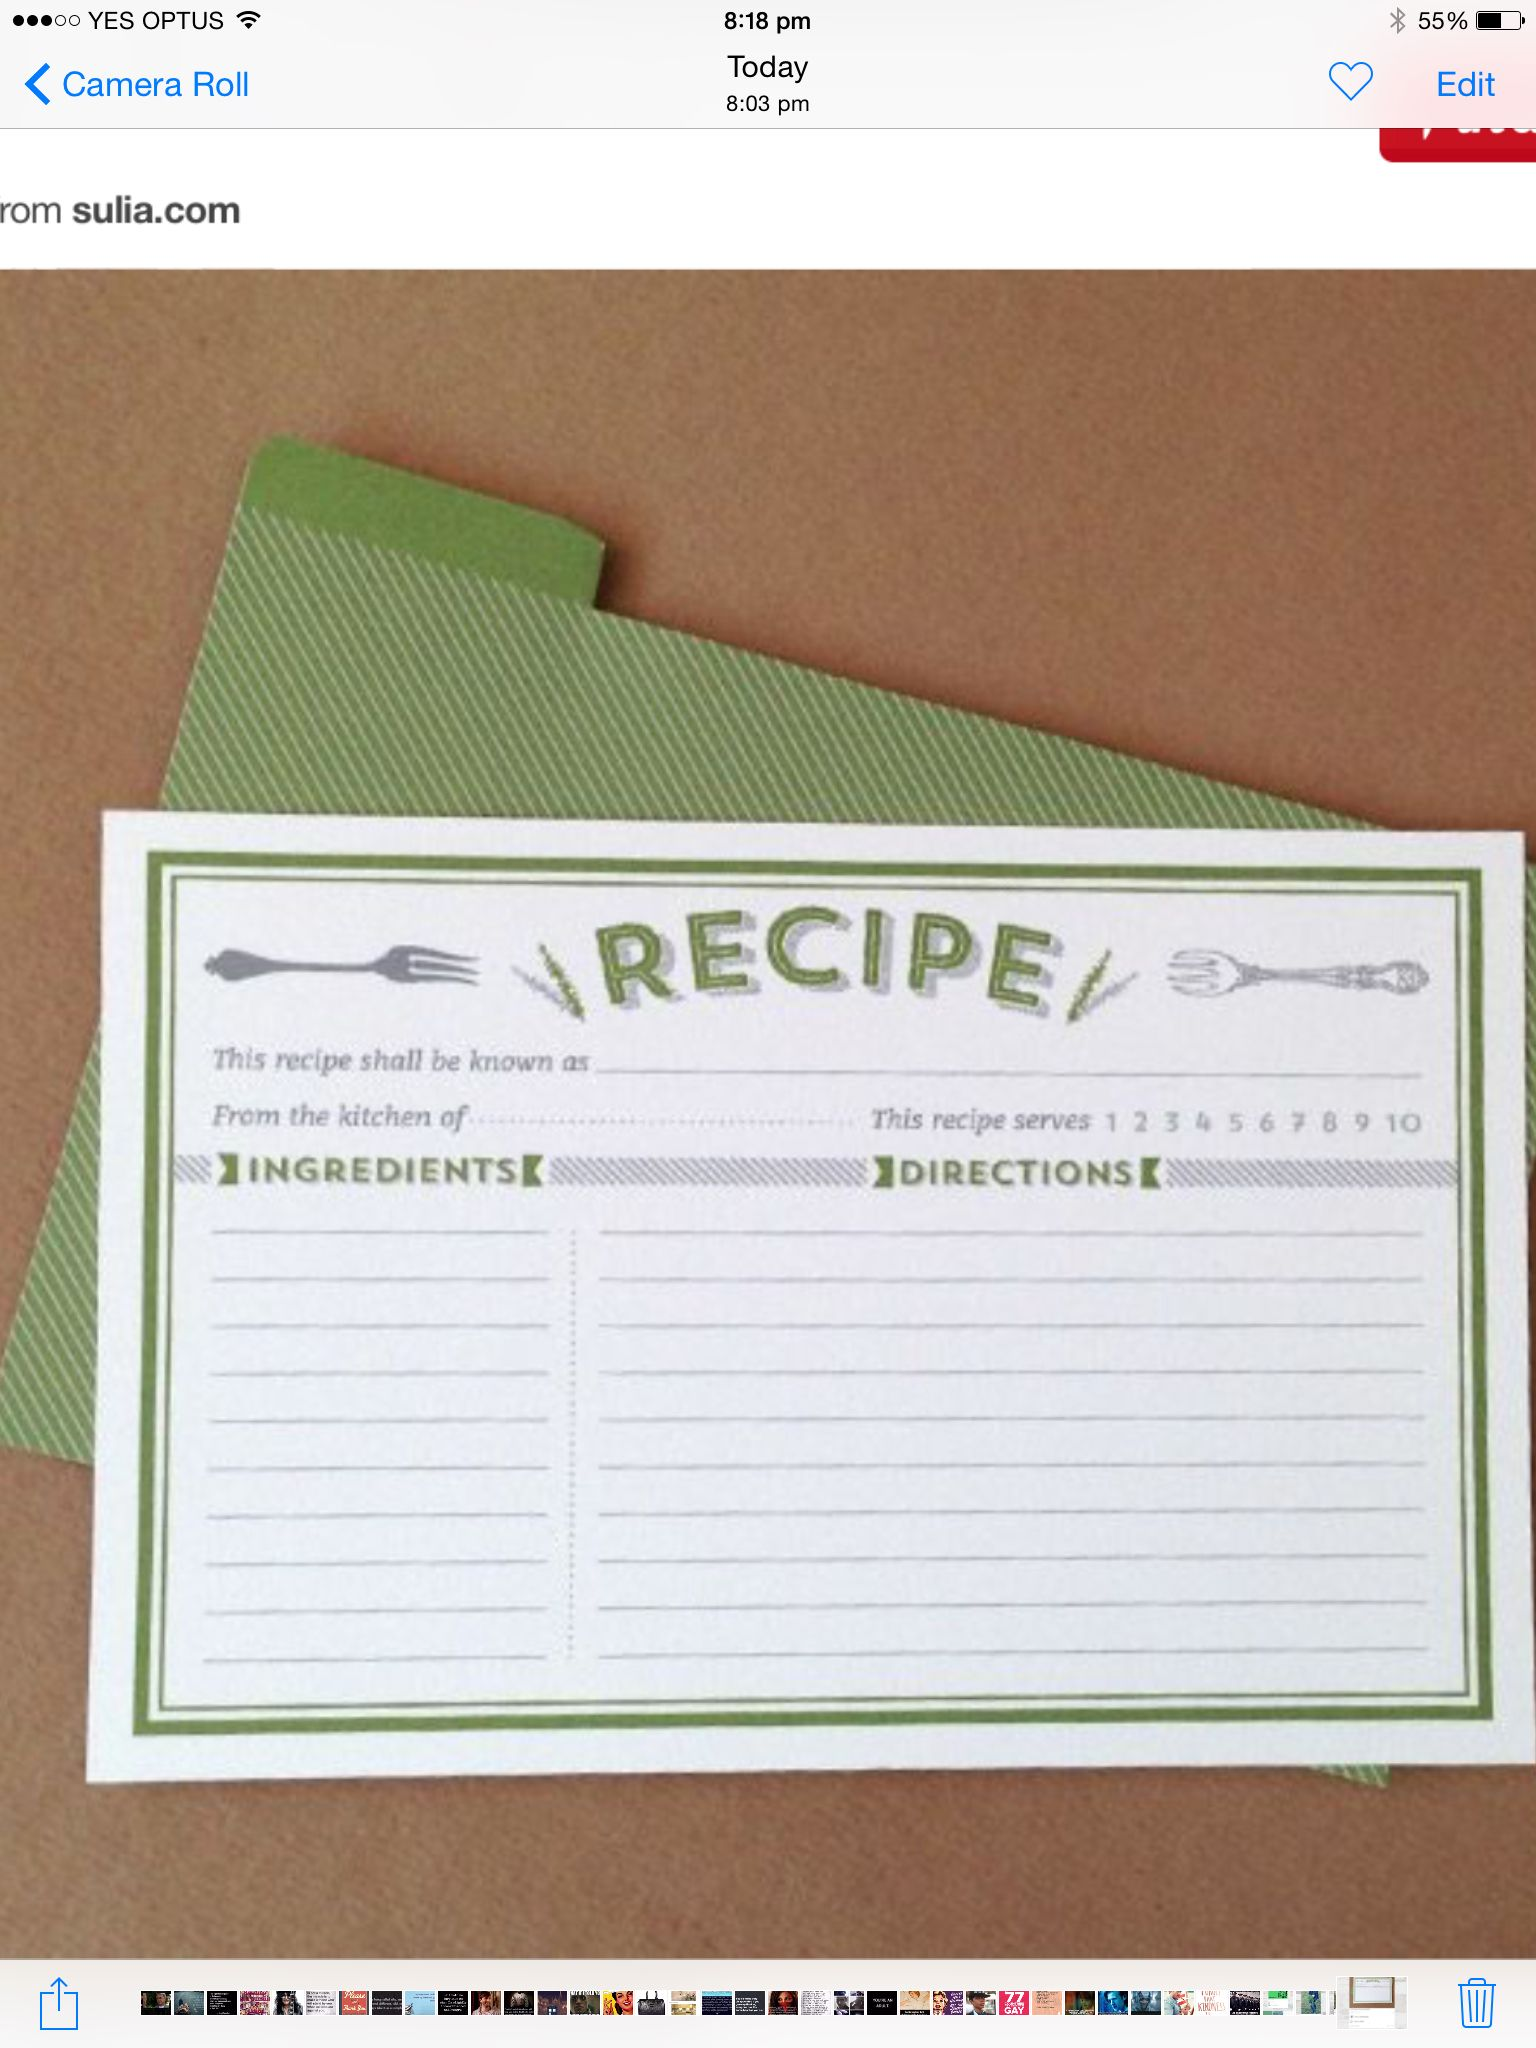 Free Recipe Card Templates For Word Brilliant Pinheather Beachell On Yummy Food  Pinterest  Yummy Food Food .